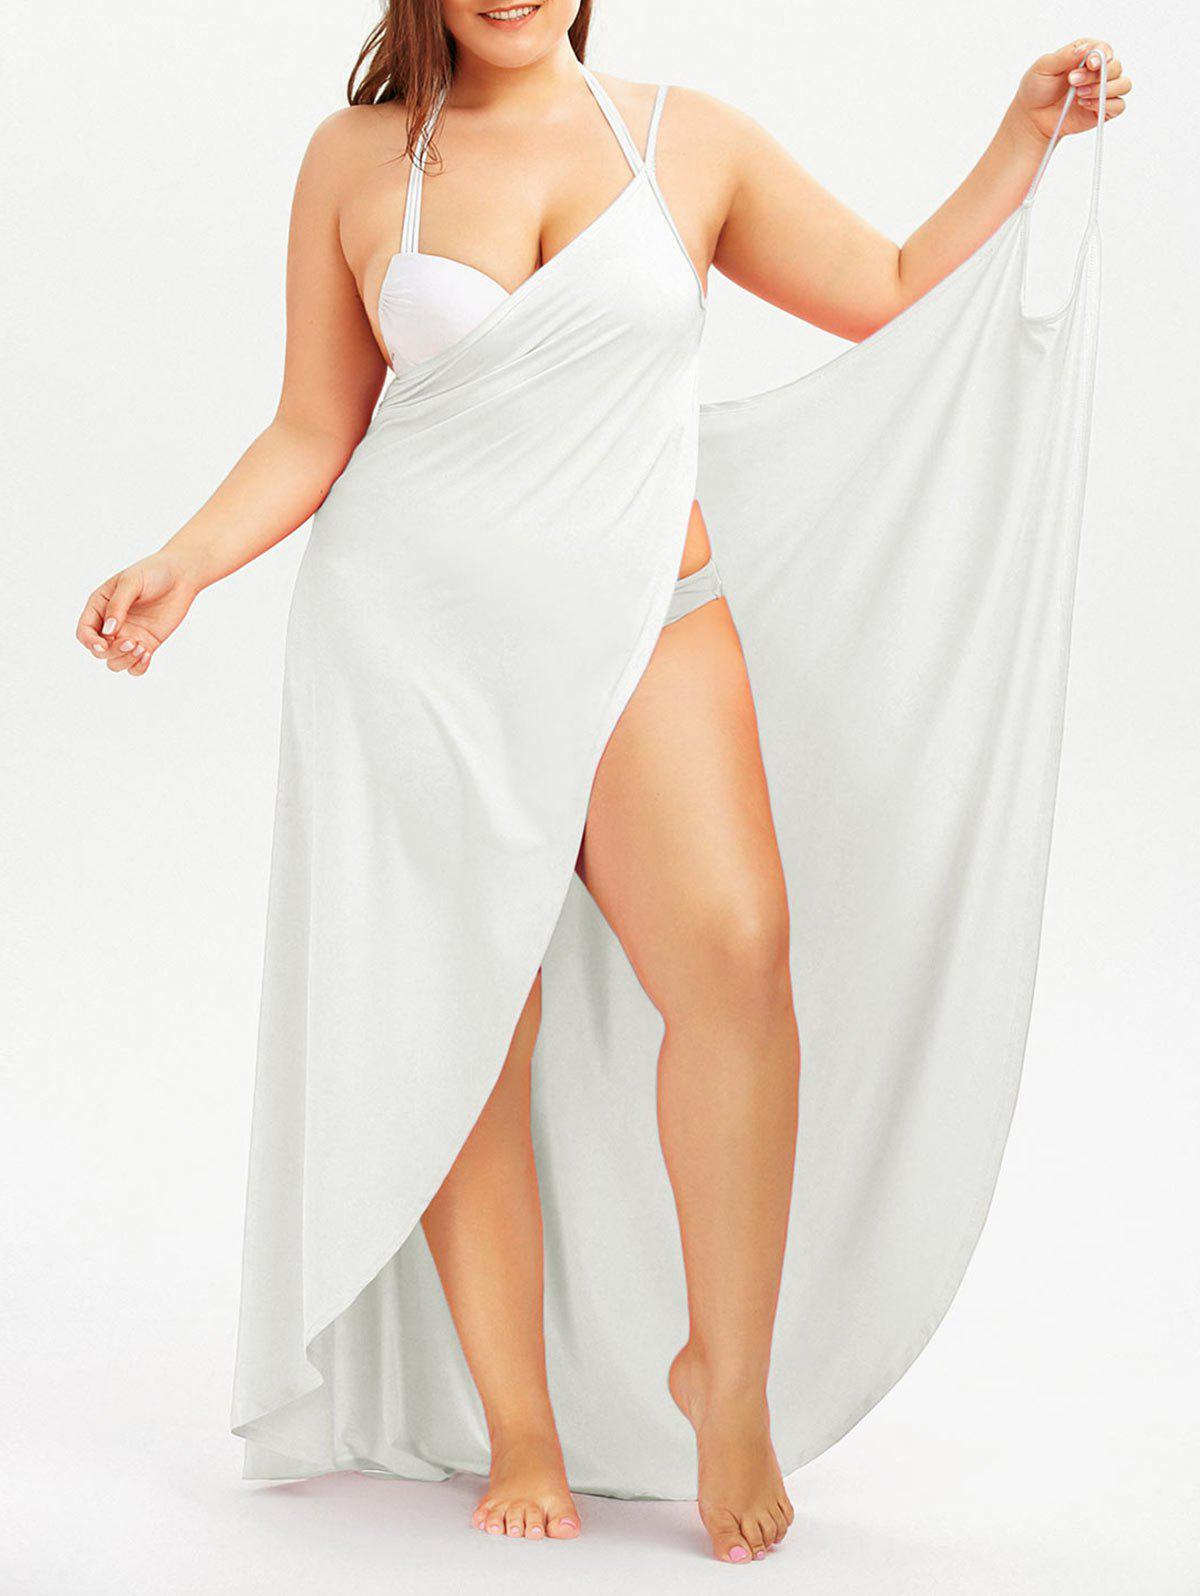 Plus Size Cover Up Beach Wrap DressWOMEN<br><br>Size: 5XL; Color: WHITE; Style: Casual; Material: Polyester,Spandex; Silhouette: Beach; Dresses Length: Floor-Length; Neckline: Spaghetti Strap; Sleeve Length: Sleeveless; Waist: Natural; Pattern Type: Solid Color; Elasticity: Elastic; With Belt: No; Season: Summer; Weight: 0.4100kg; Package Contents: 1 x Dress;